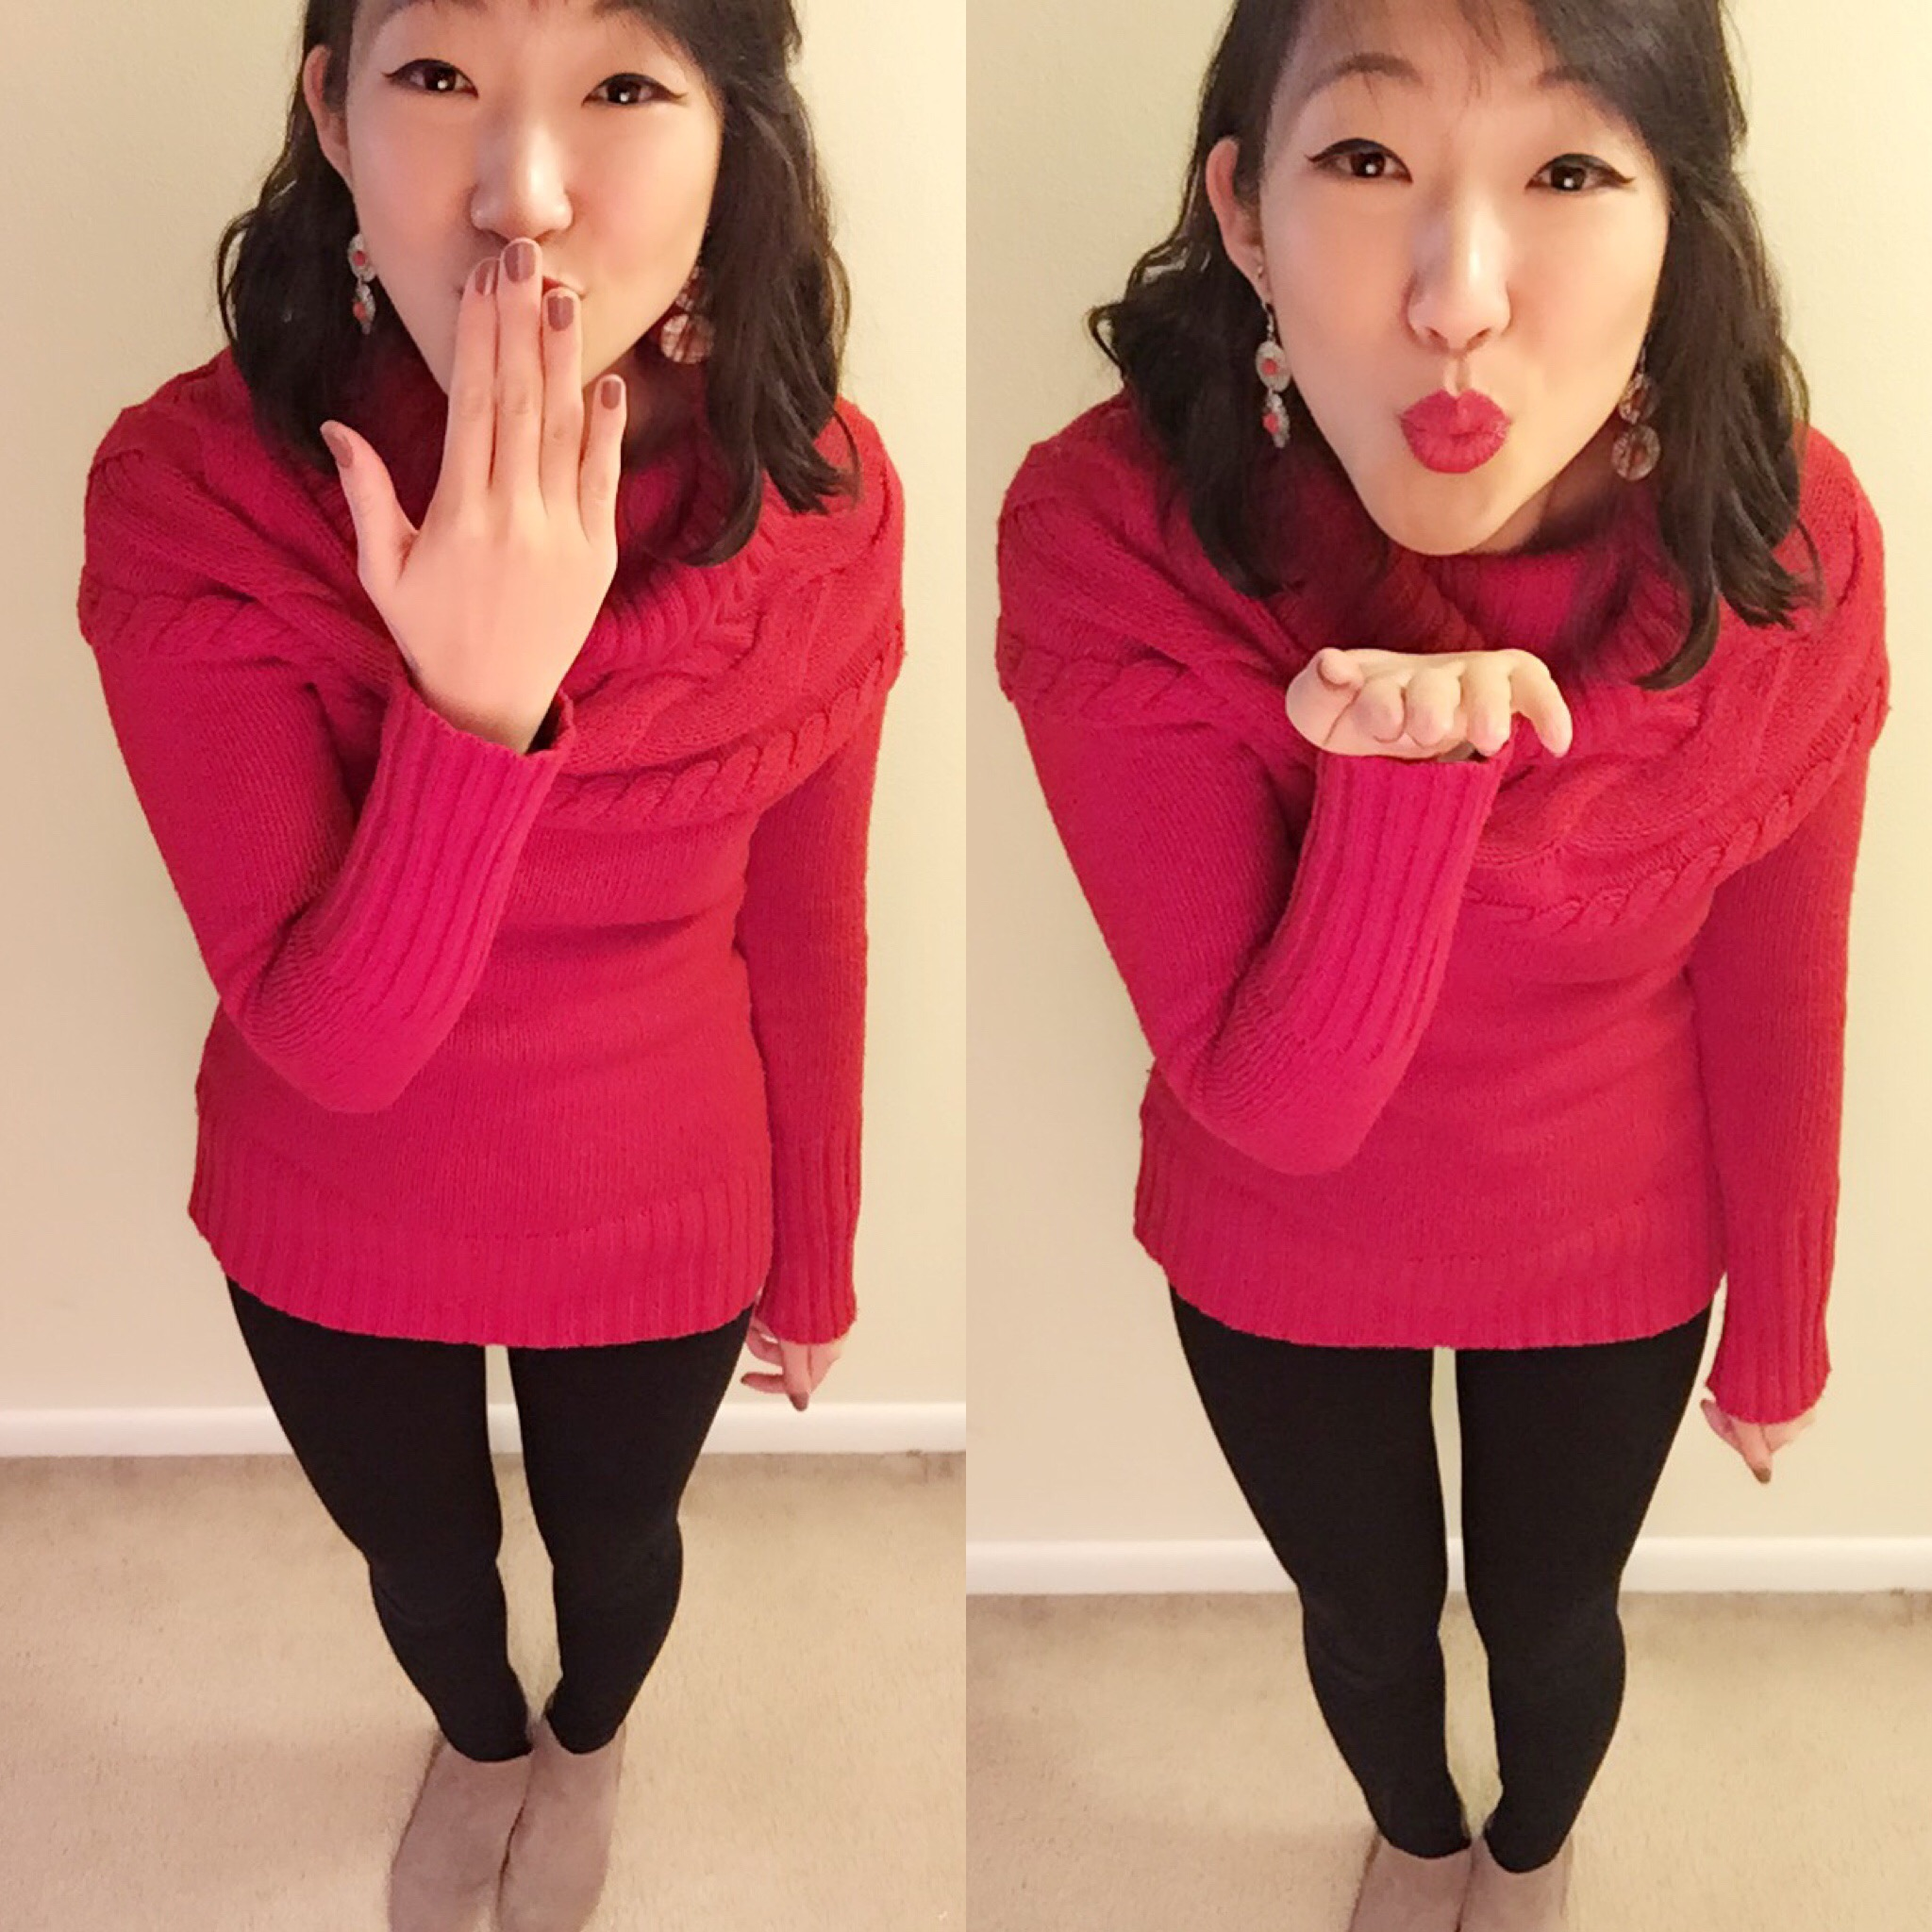 Earrings: Target/Lipstick: Colour Pop Cosmetics/Sweater: Ann Taylor Loft (Thredup), Similar one:  Here /Booties: Ninewest